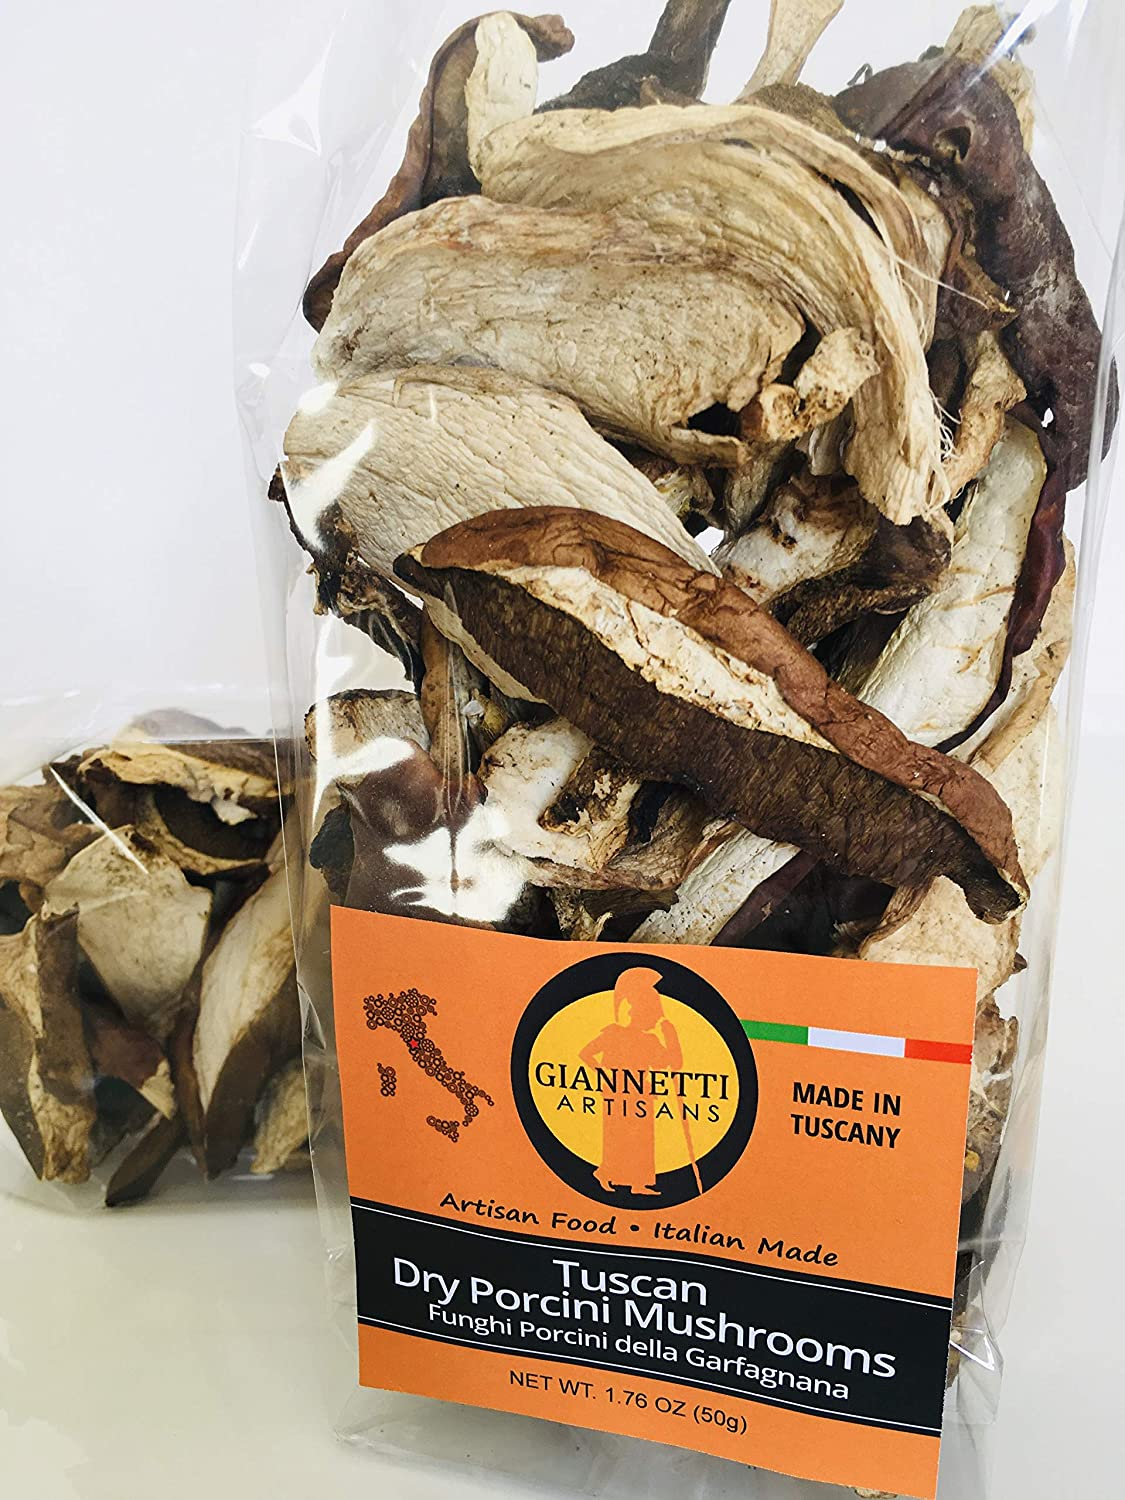 Giannetti Artisans Dried Italian Porcini Mushrooms (2020 Batch) - Imported from Tuscany (1.76 oz / 50 gr)